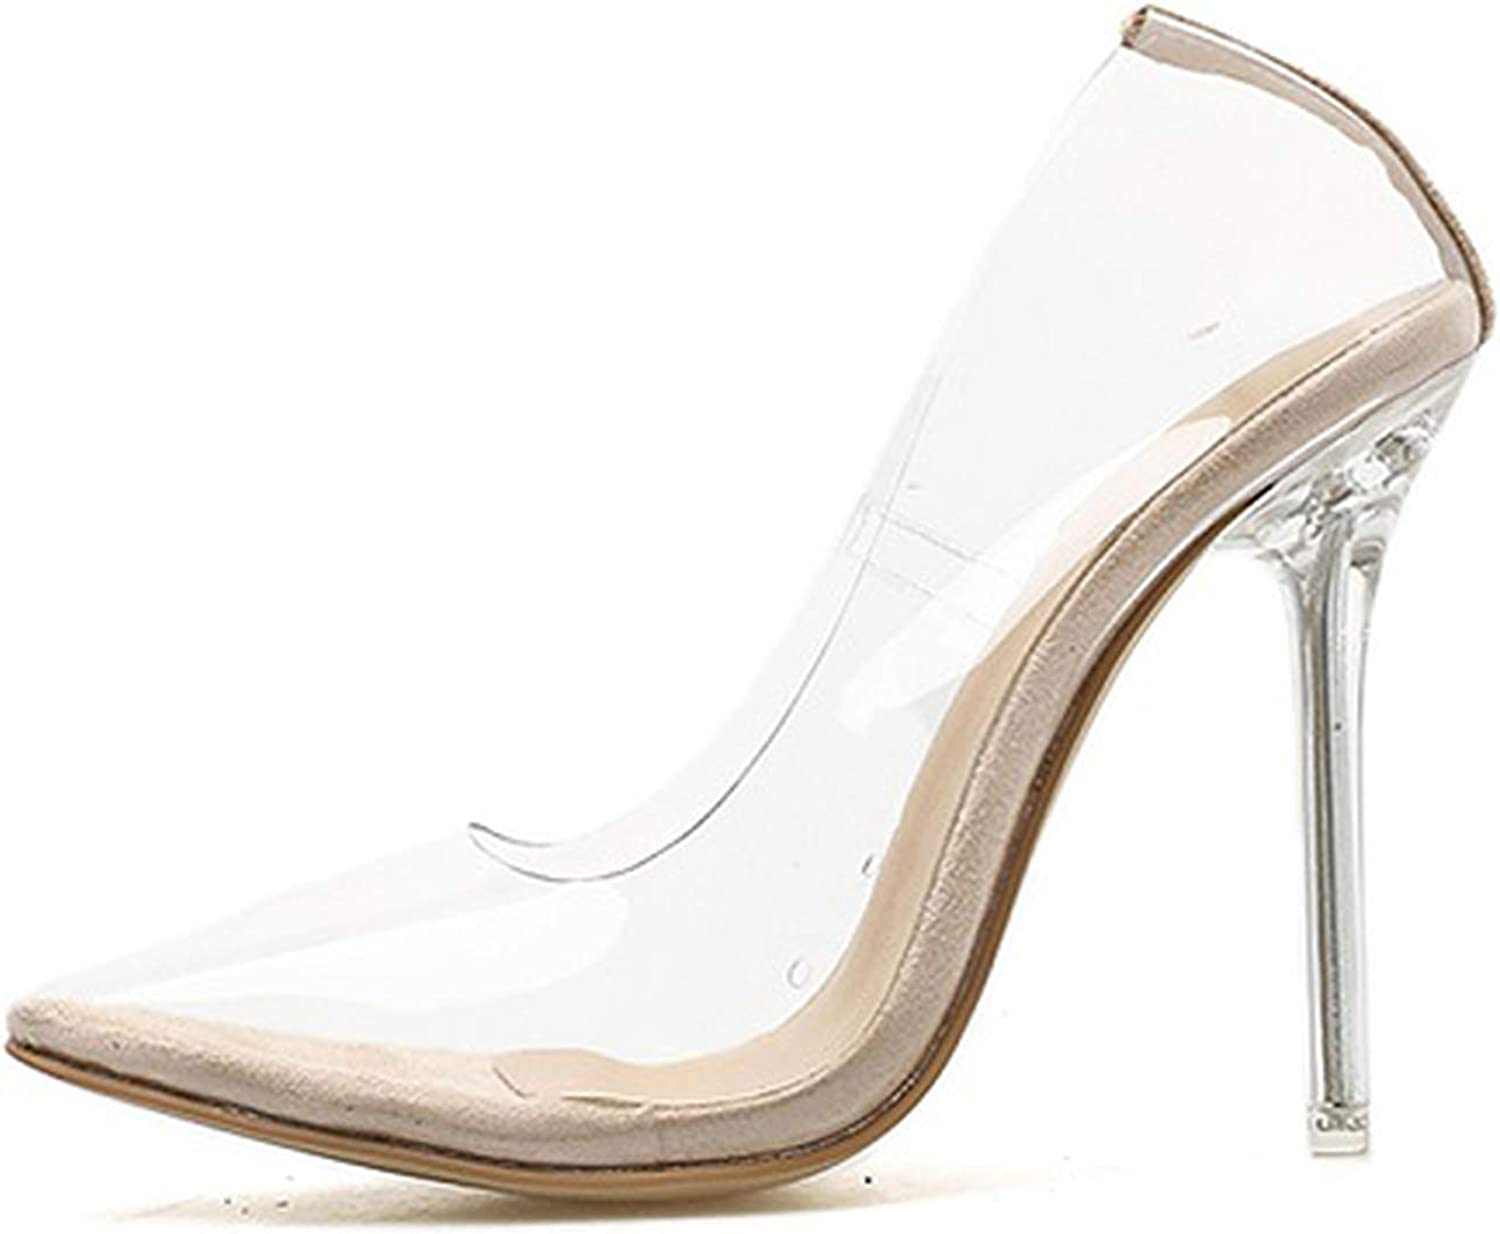 Clear PVC Transparent Pumps Sandals Perspex Heel Point Toes Womens Party shoes 35-42